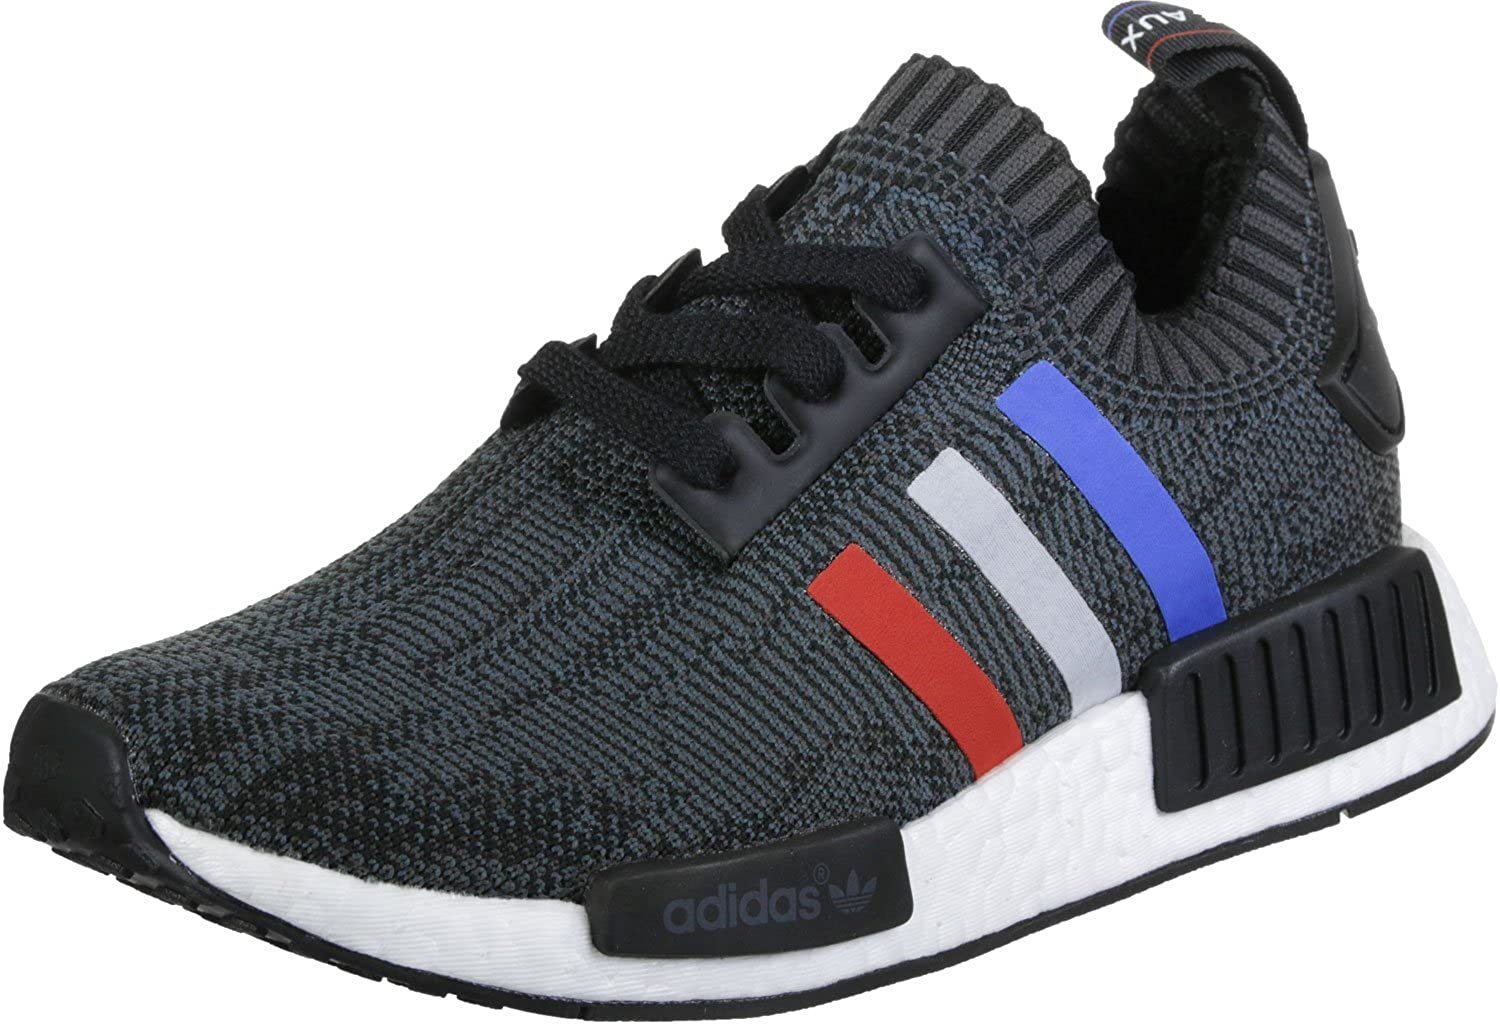 ADIDAS NMD R1 CORE BLACK SOLID GREY WHITE RED ULTRA